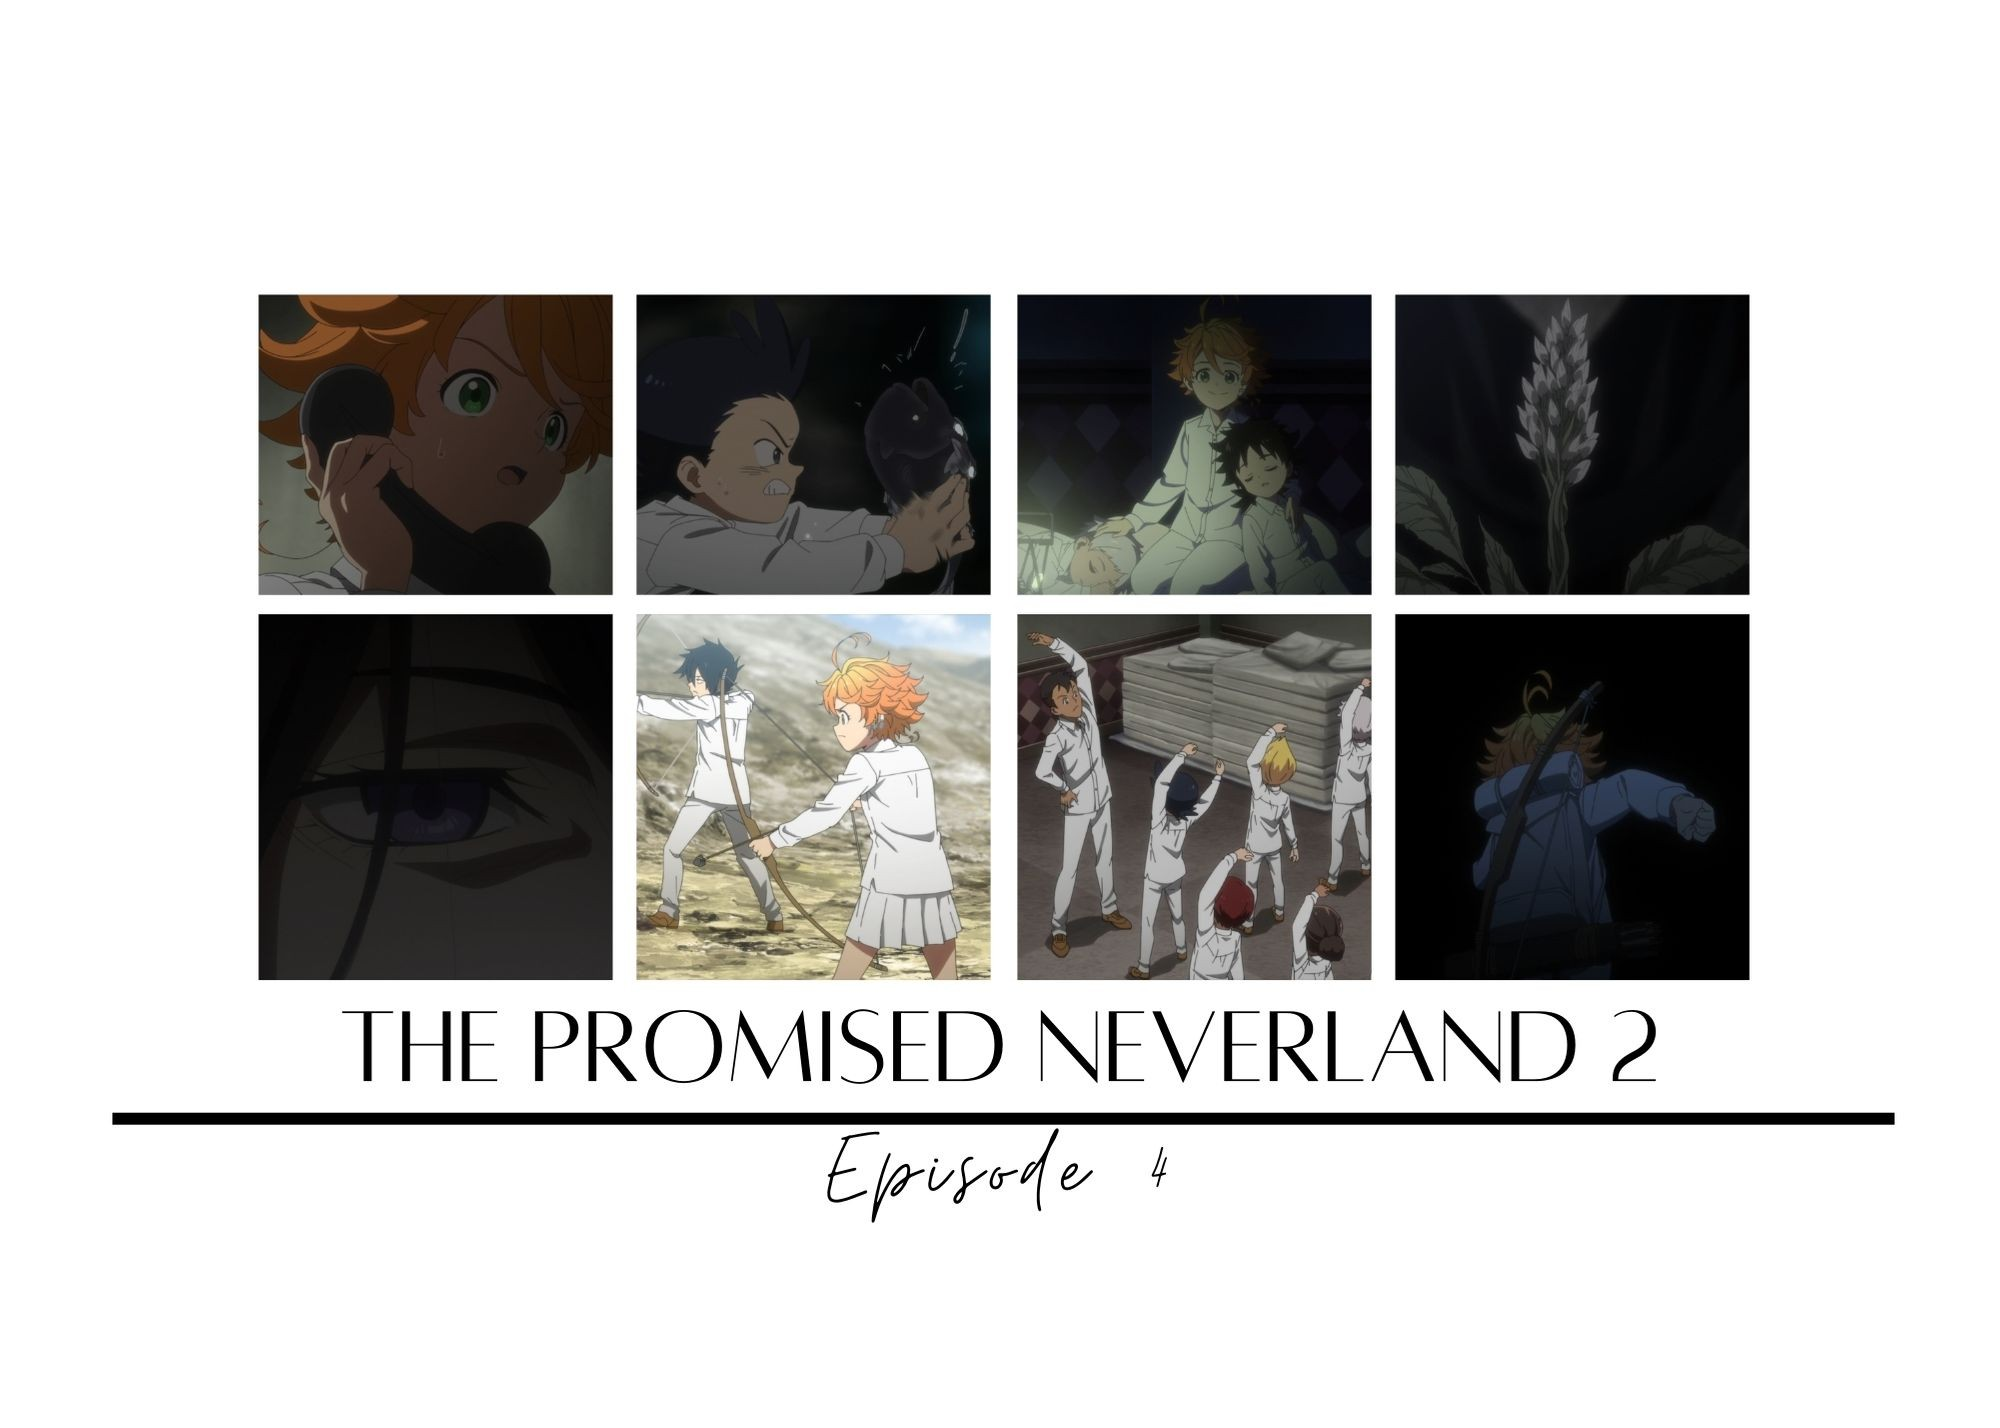 Background image for The Promised Neverland 2 episode 4